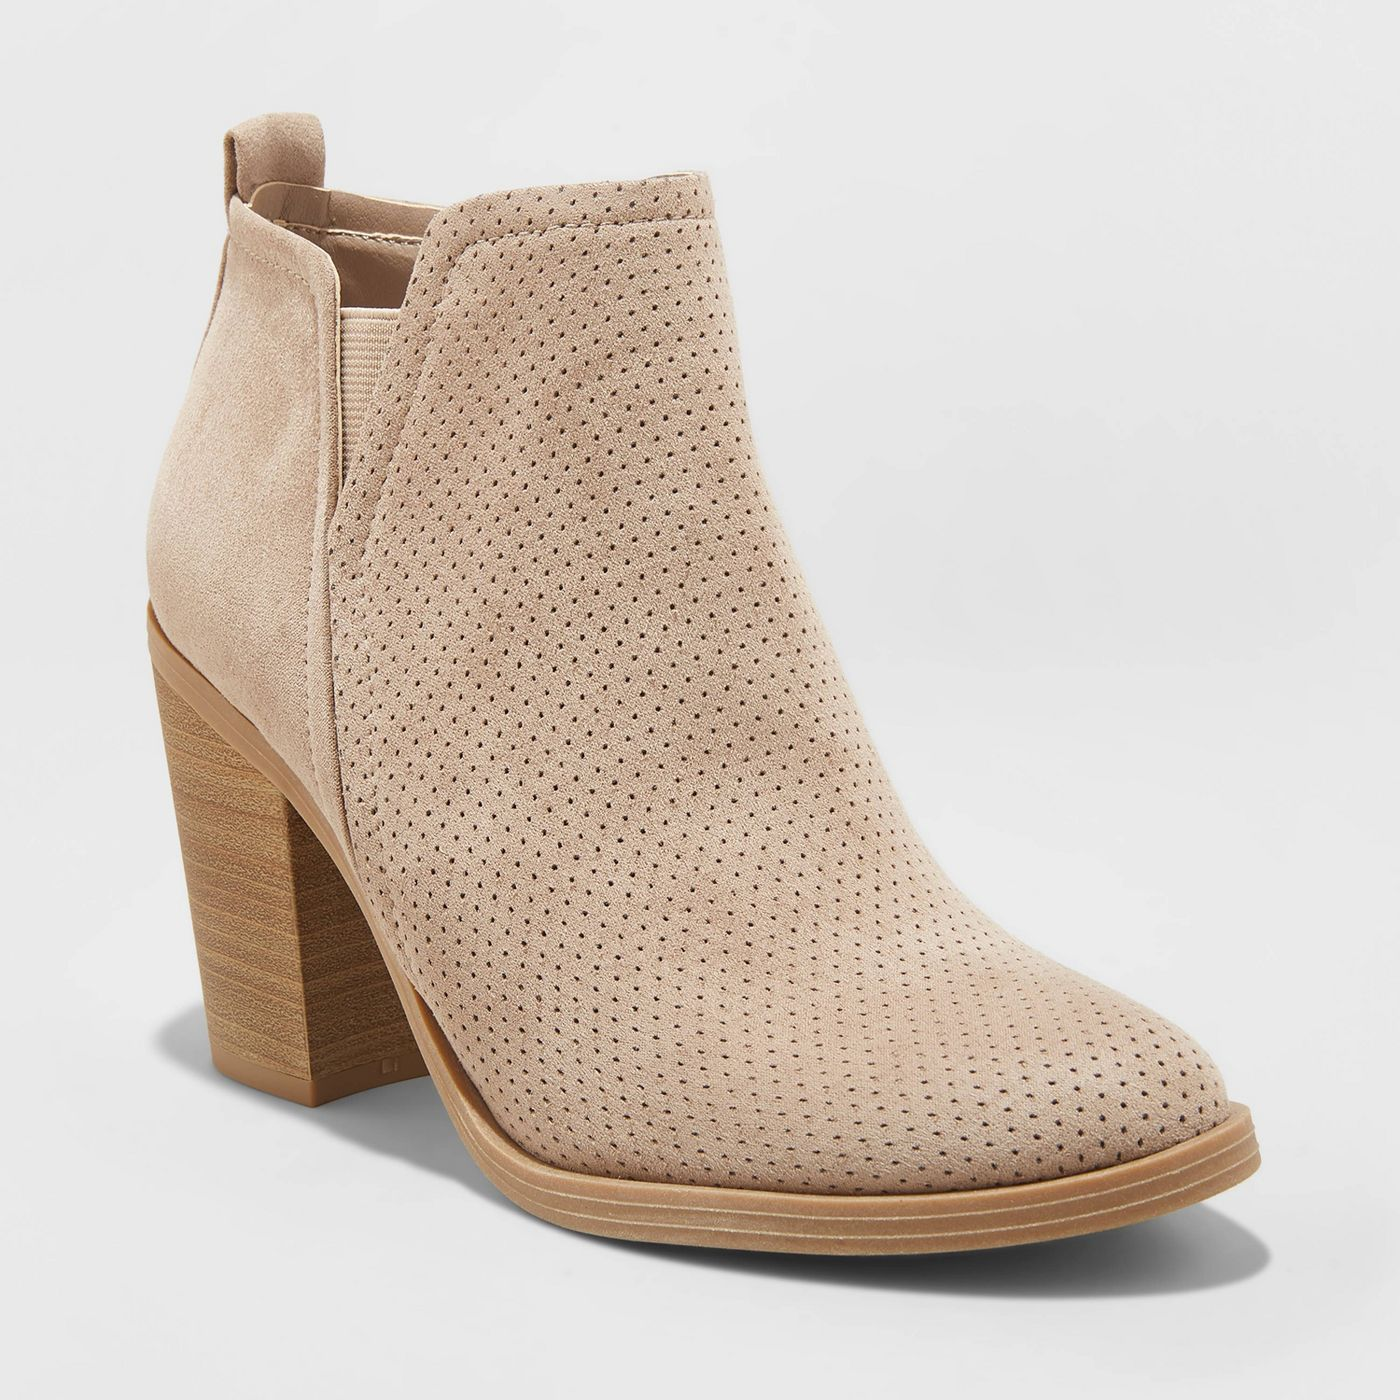 Perforated fall boot for 2019 that's popular, on trend, and under $40!